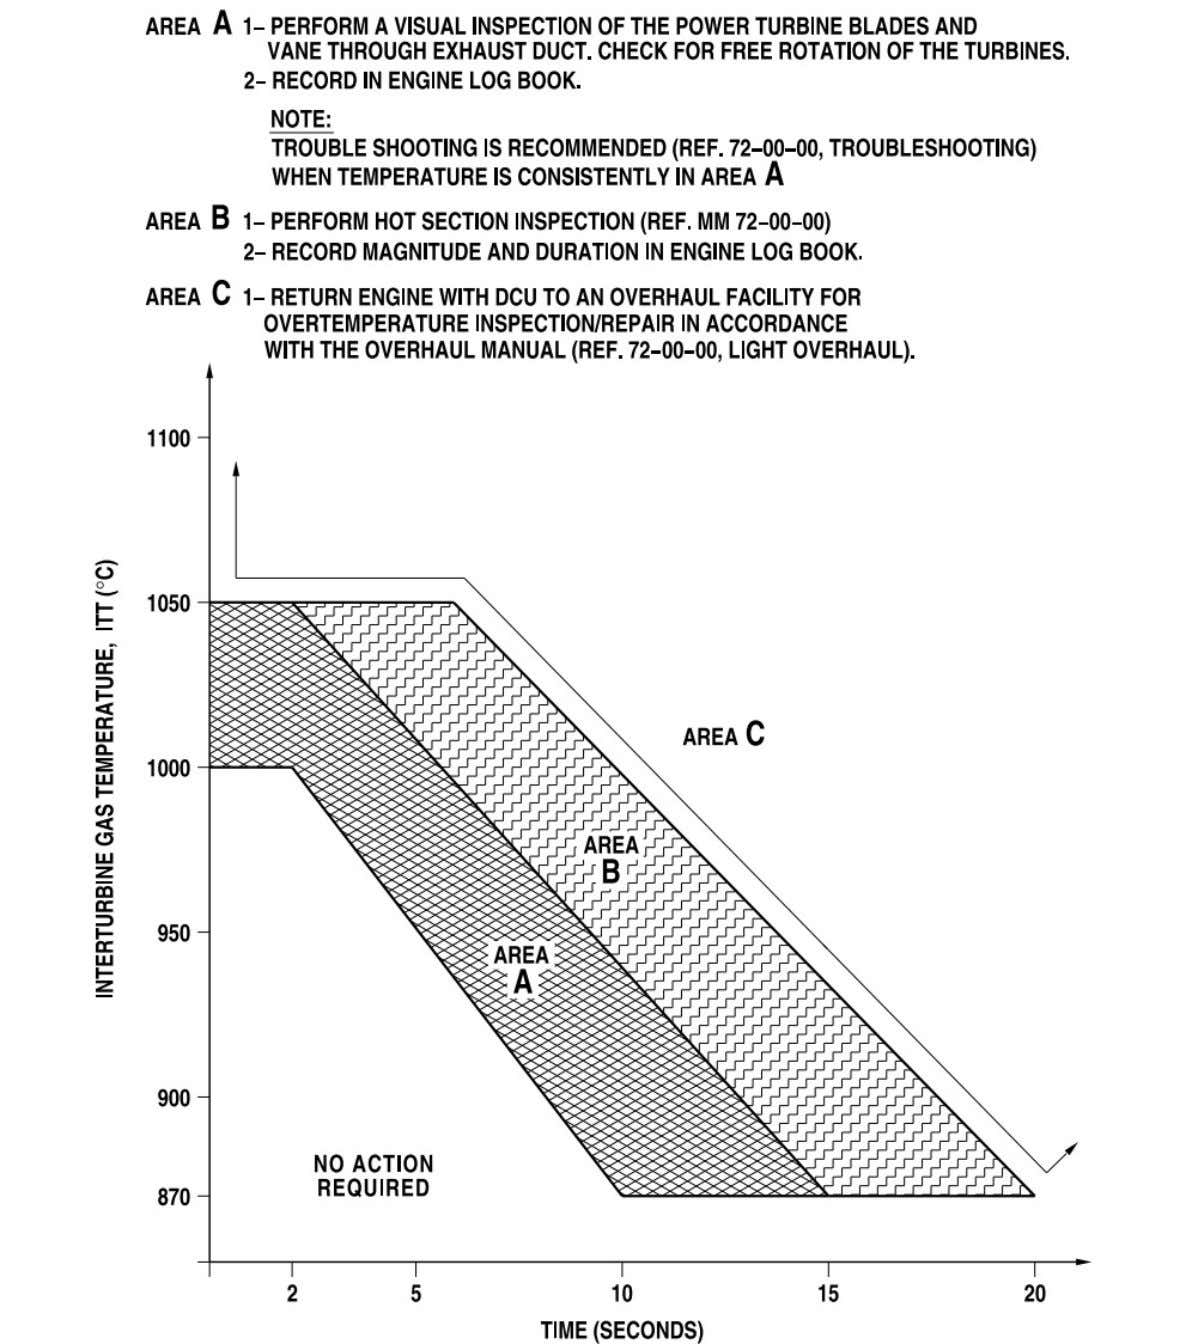 MANUAL PART NO. 3045332 REVISION NO. 16 05-10-00 Figure 2 Overtemperature Limits - Starting Conditions (SHEET